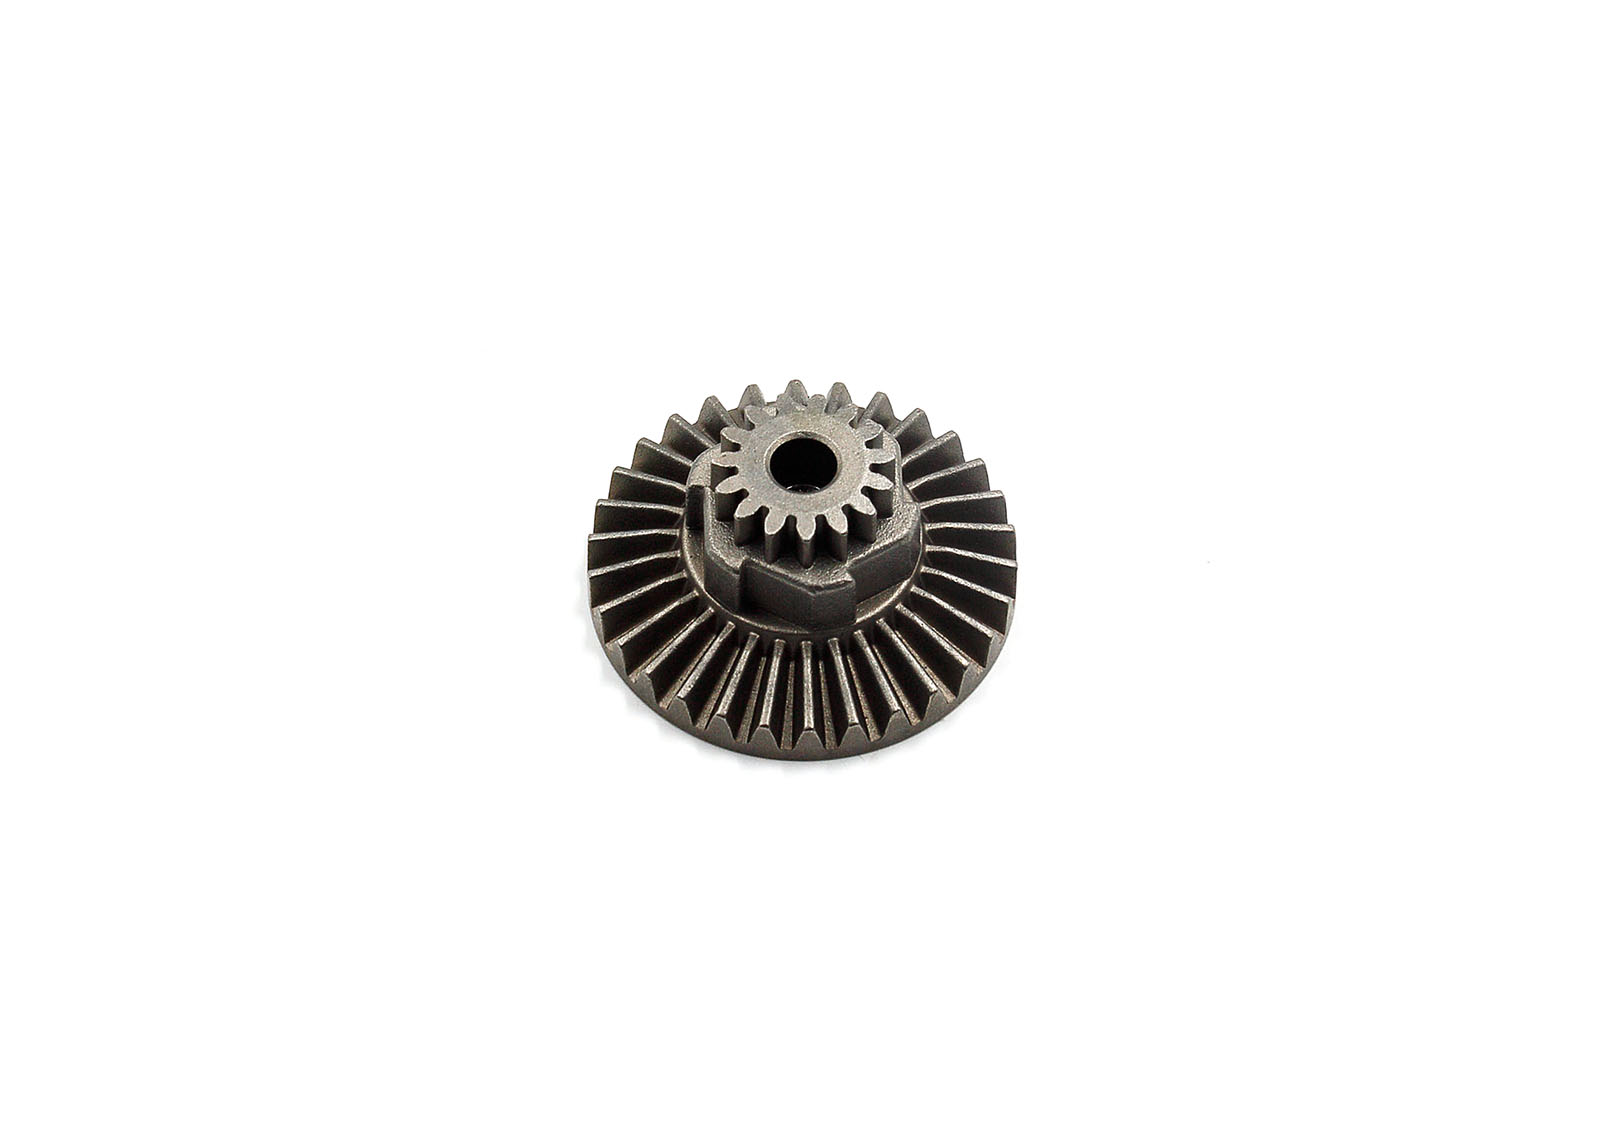 Smooth Bevel Gear Ver.2/Ver.3/Ver.6(Speed) with 7mm Ball Bearing - Modify Airsoft parts